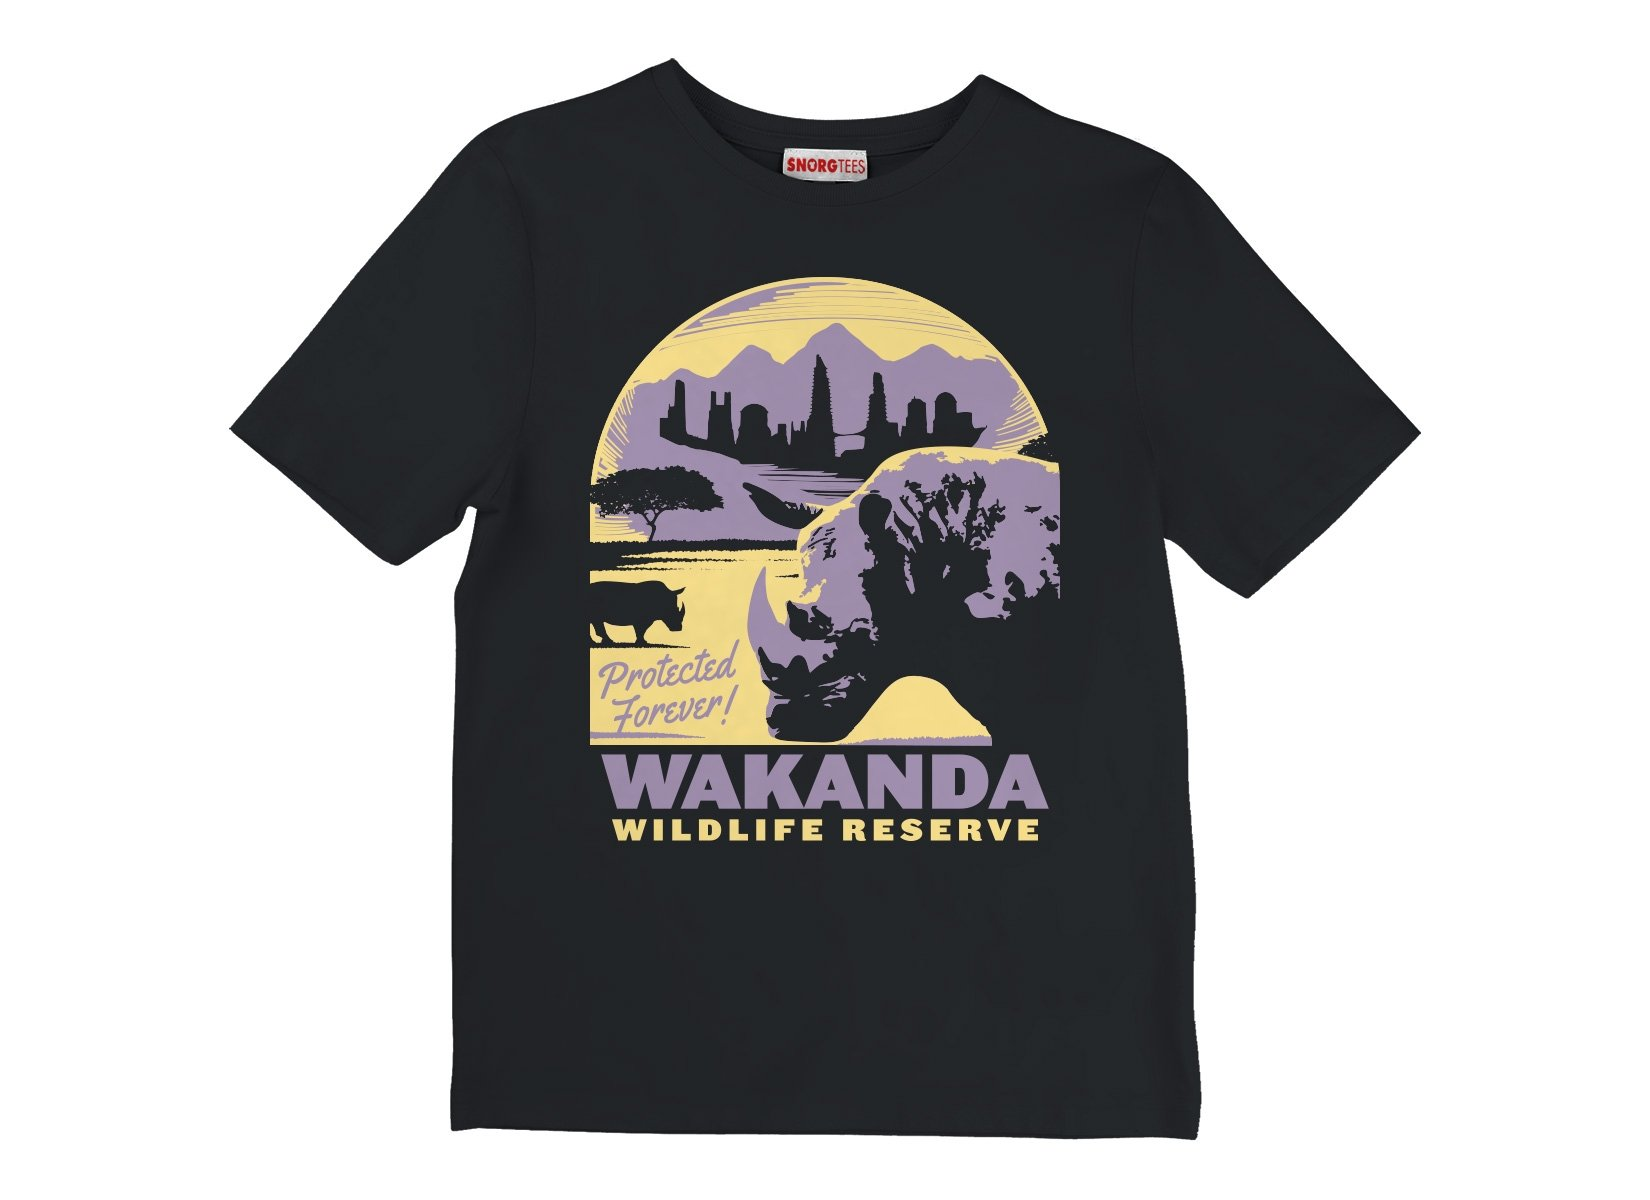 Wakanda Wildlife Reserve on Kids T-Shirt